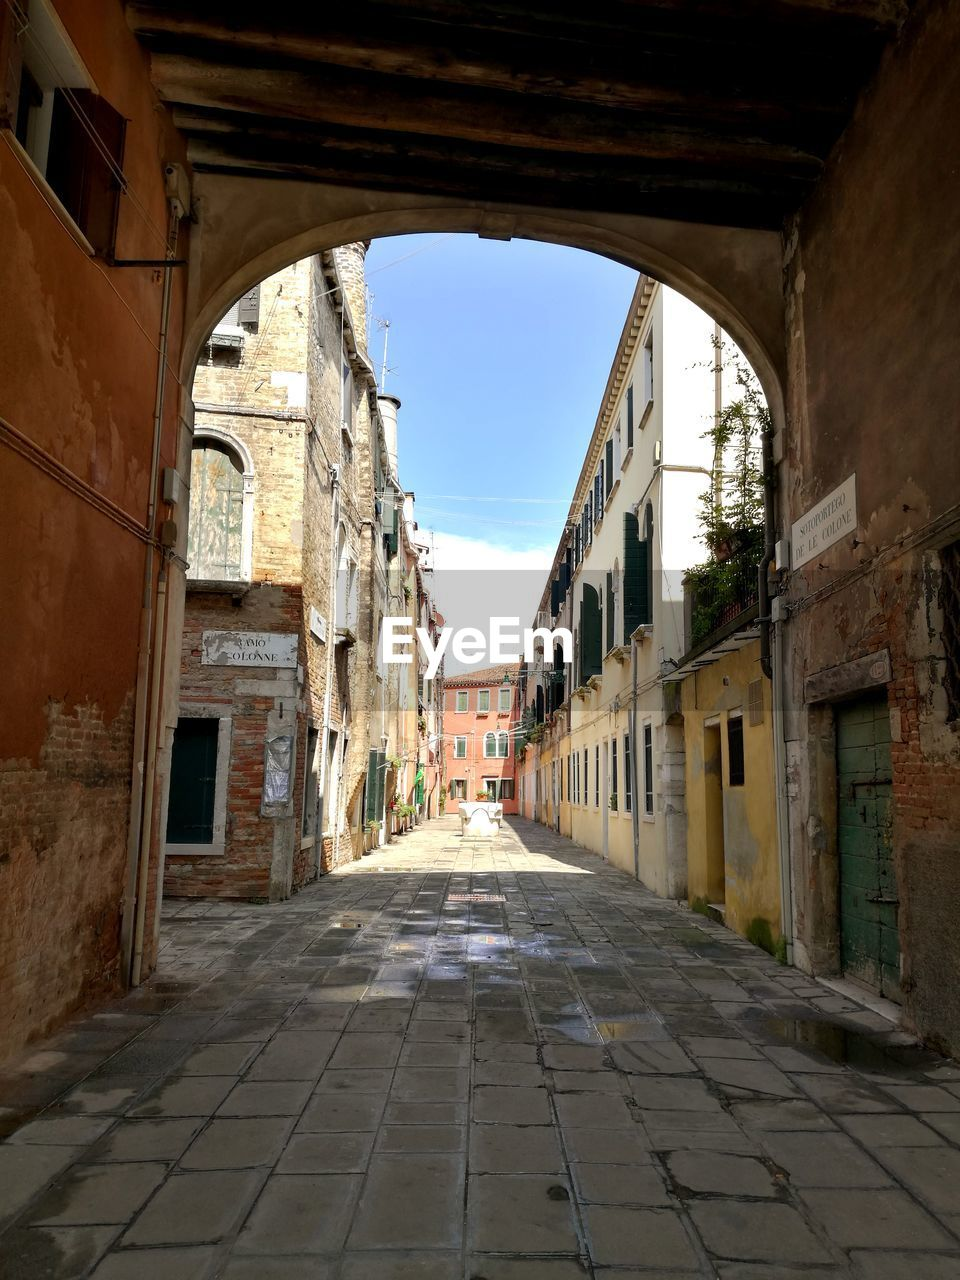 architecture, built structure, building exterior, building, direction, the way forward, city, sky, arch, no people, street, day, residential district, old, nature, town, empty, diminishing perspective, house, history, alley, outdoors, paving stone, long